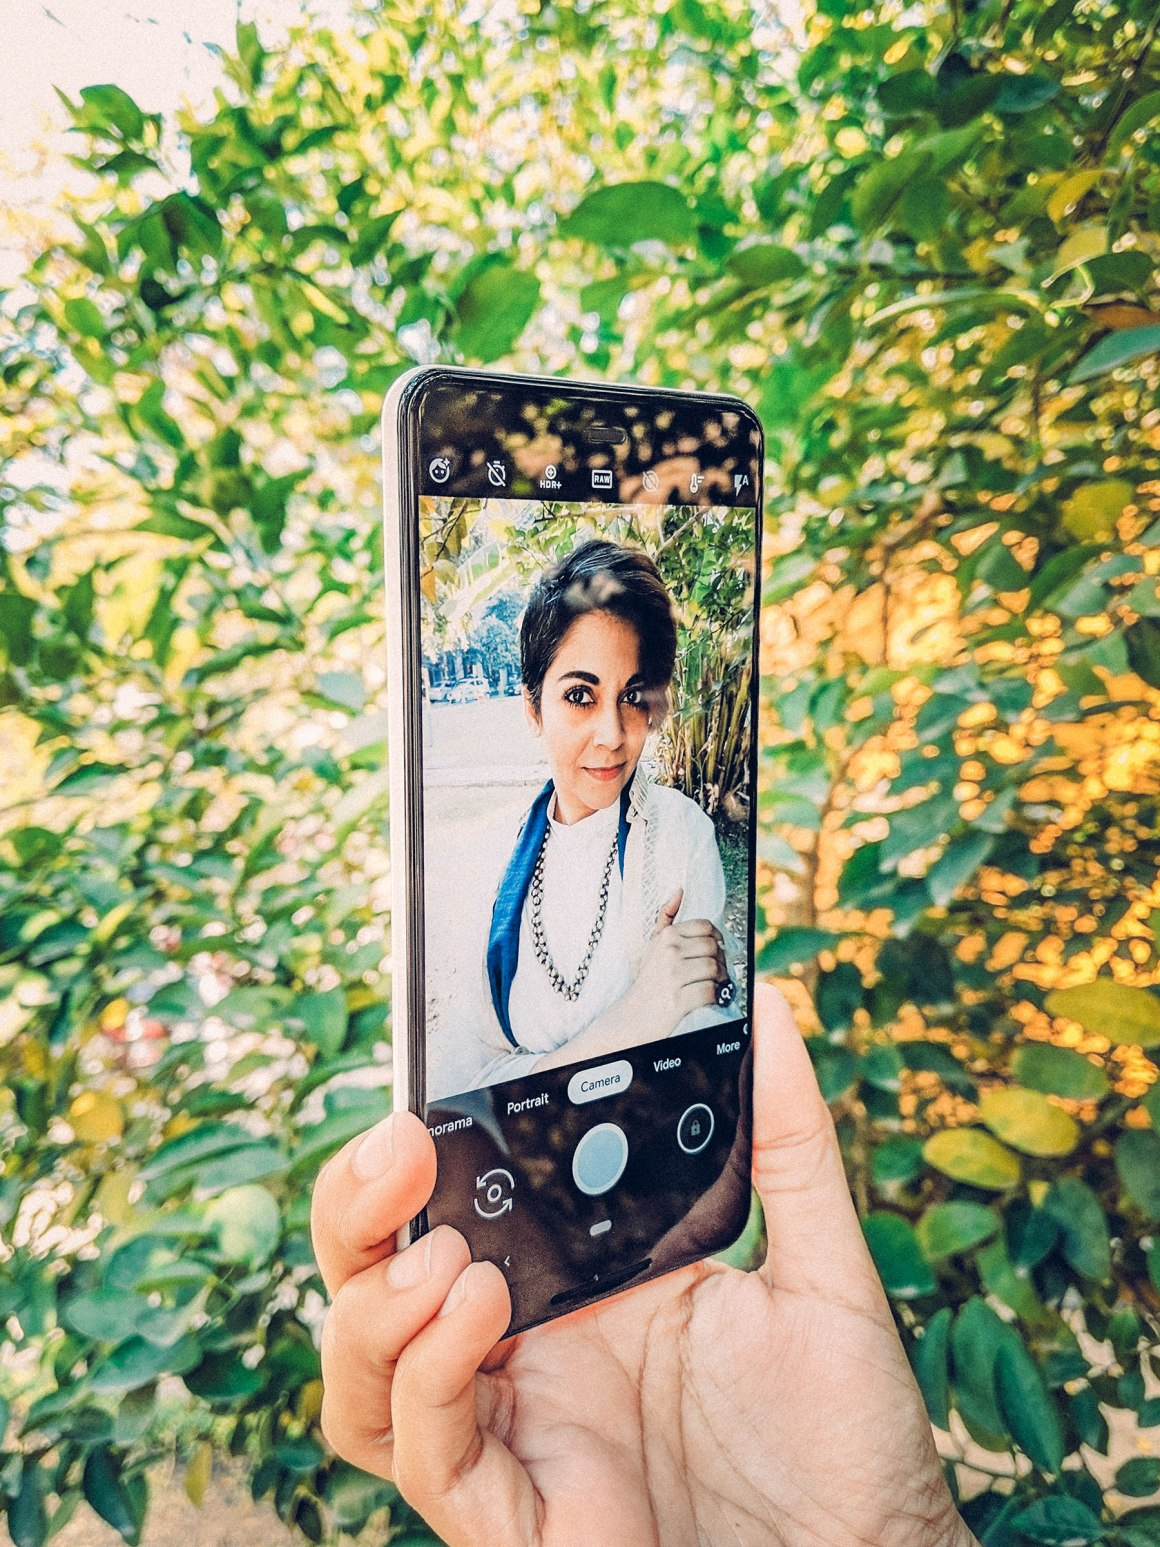 Naina.co, Naina Redhu, Pixel 3 XL, Google Pixel, Pixel 3, Camera, Smartphone Photography, Google Smartphone, Magazine Cover, #NAINAxSTYLE, Photo shoot, Photography, Bad Gal Bang, Benefit Cosmetics, Benefit India, PoshPride, EyesForTechnology, EyesForBeauty, Mascara, Selfie, Night Sight, Portrait Mode, Wide Selfie, Google Pixel 3 Launch Party, Portraiture, Photographer, Photo Blogger, Photo Blogger India, Photographer India, Professional Photographer India, Lifestyle Photographer, Lifestyle Blogger